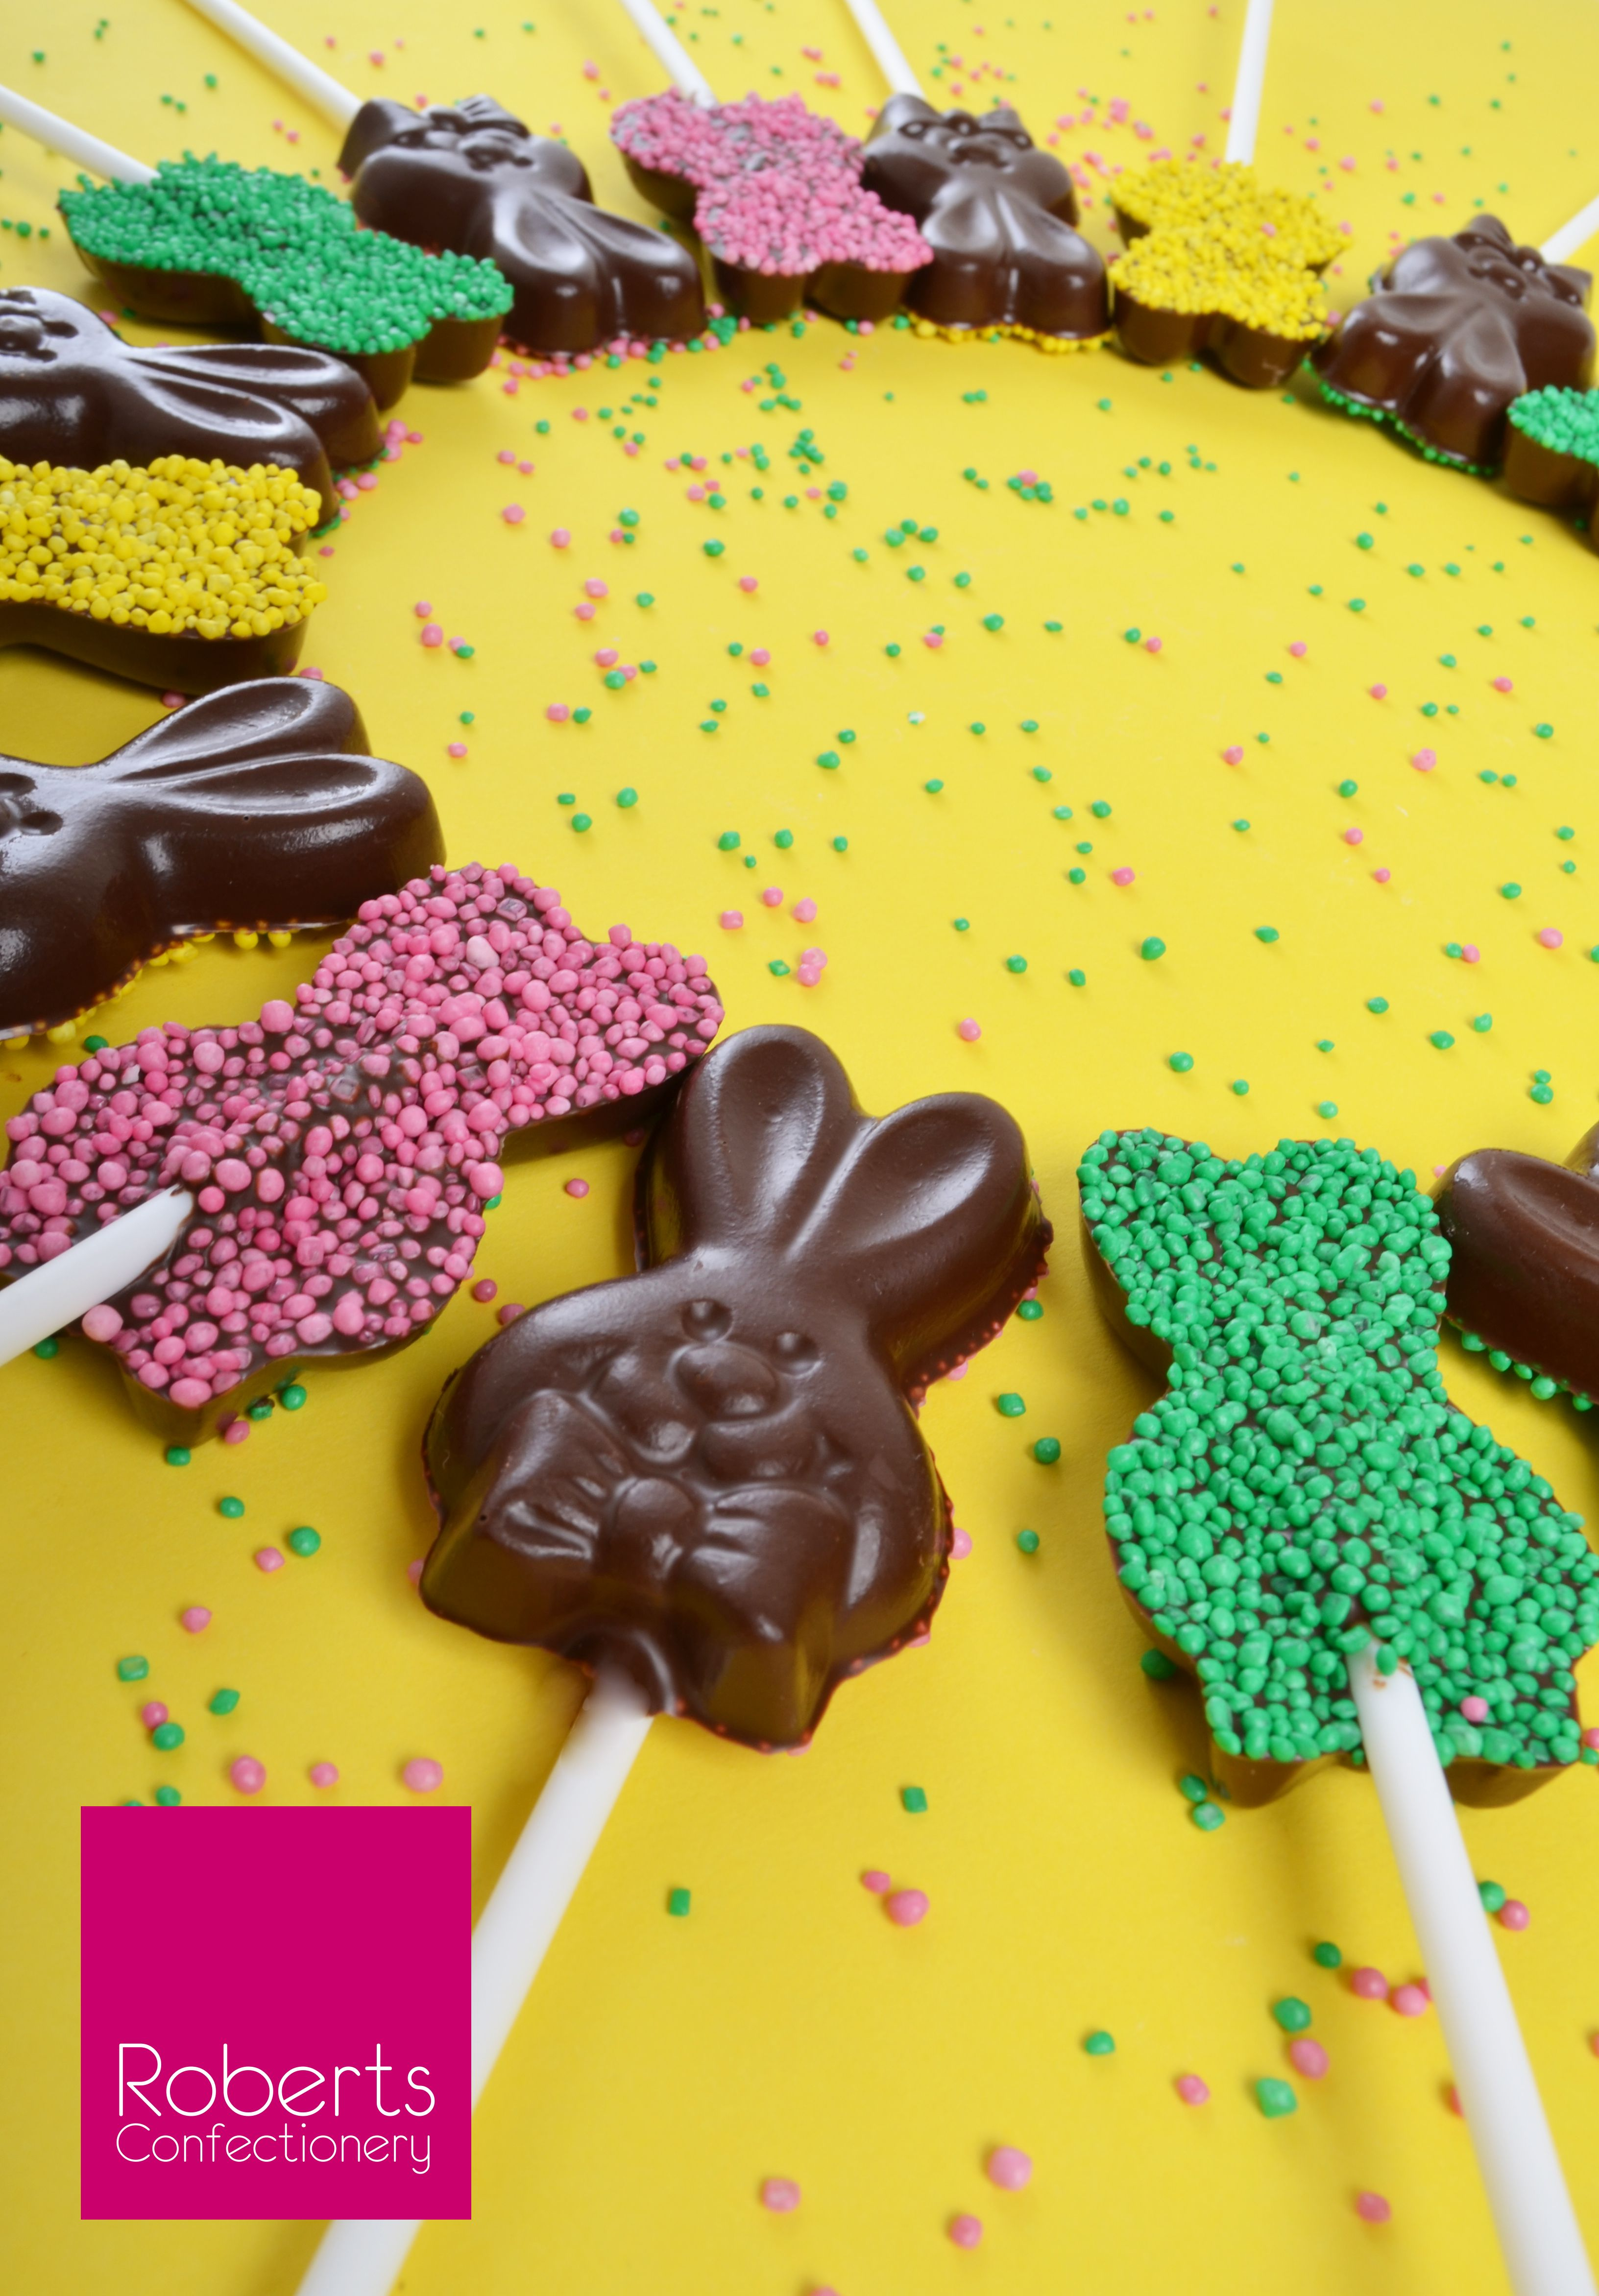 Sprinkle Bunnys Made With Roberts Confectionery Easter